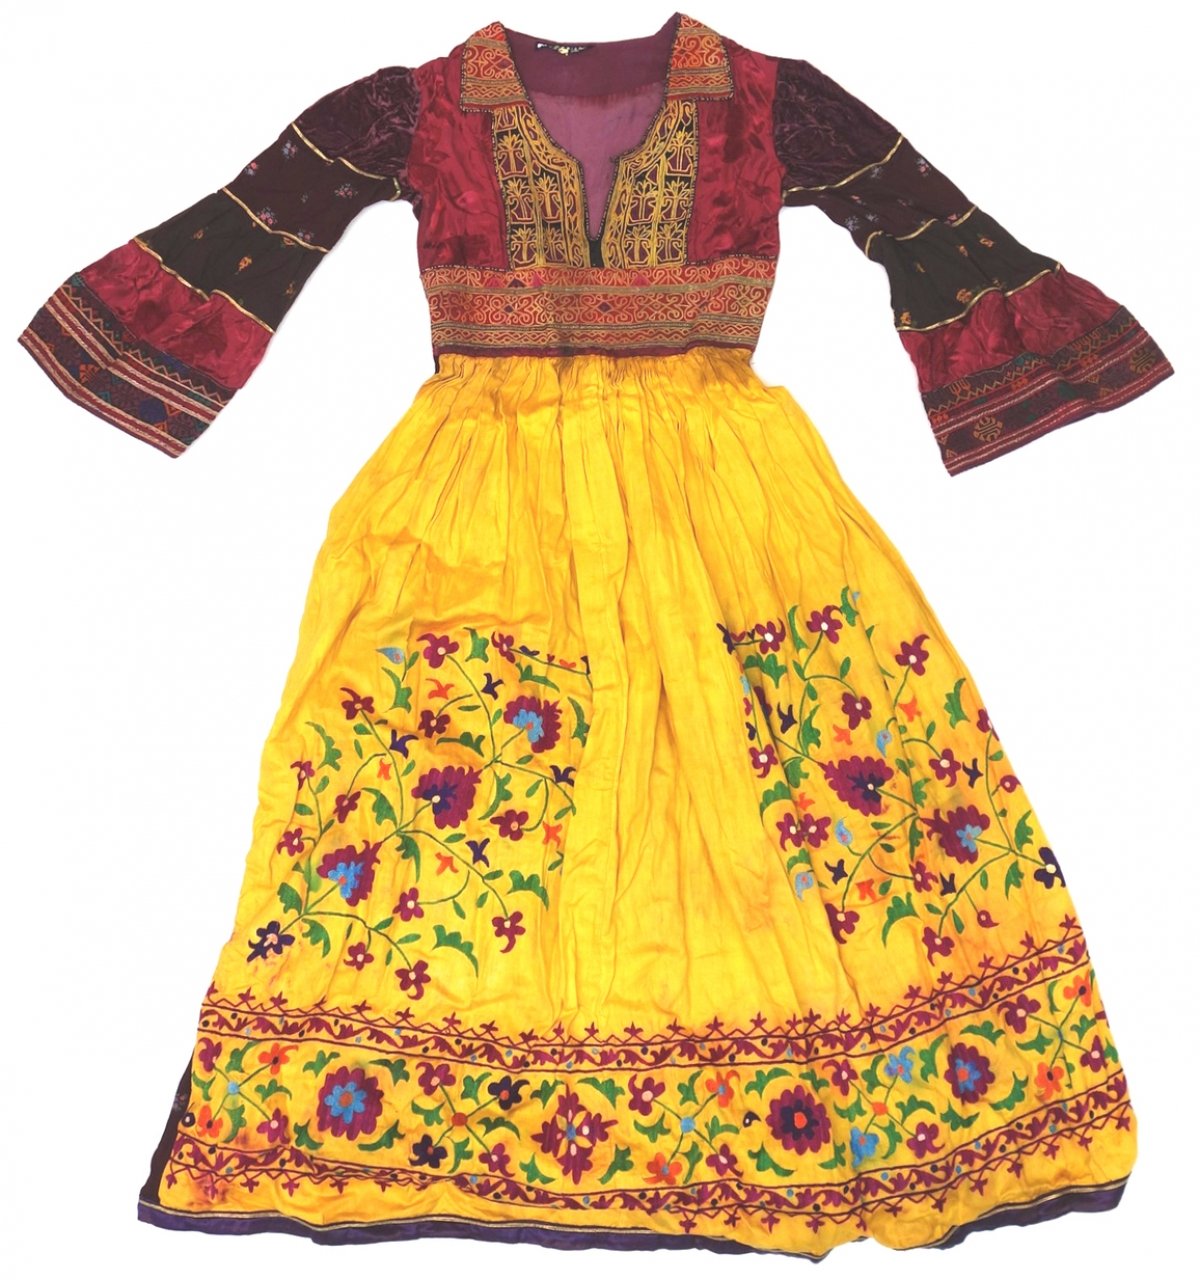 Dress made from an Hazara dress bodice from Afghanistan and a skirt made from an Uzbek suzani (needlework), sold in the 1970s under a Dutch designer's label.